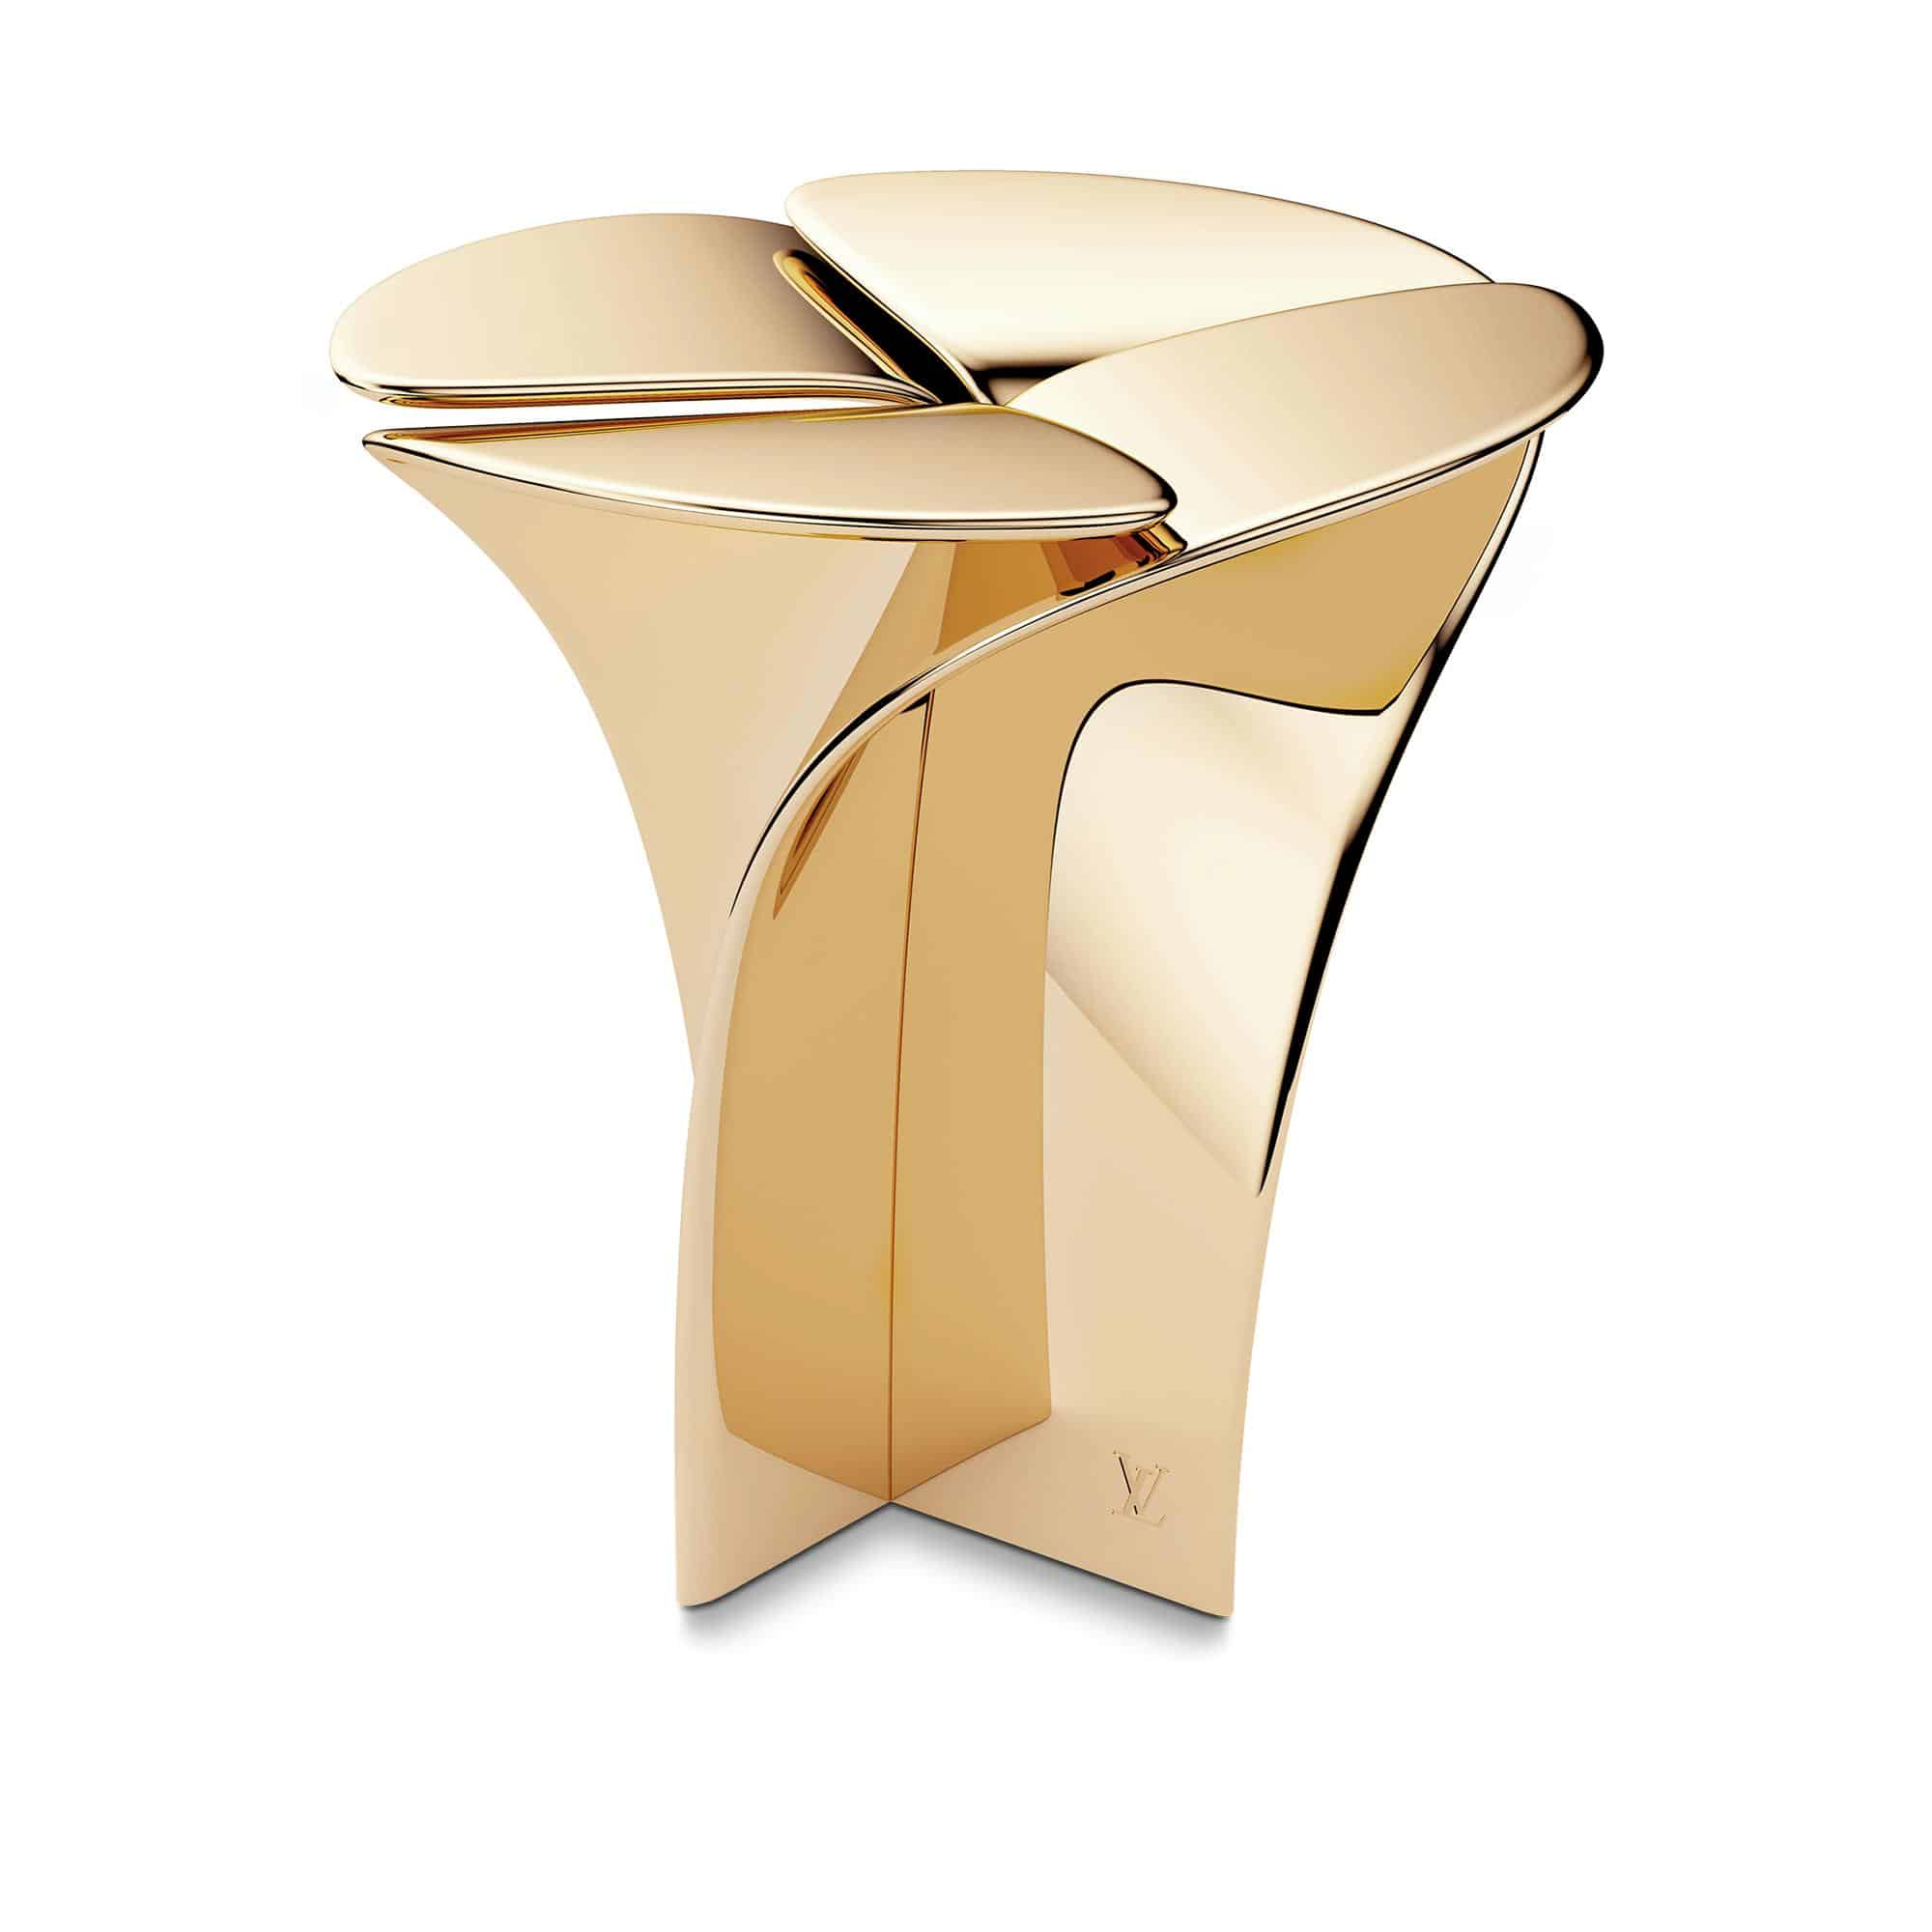 louis-vuitton--BLOSSOM STOOL METAL BY TOKUJIN YOSHIOKA - gold